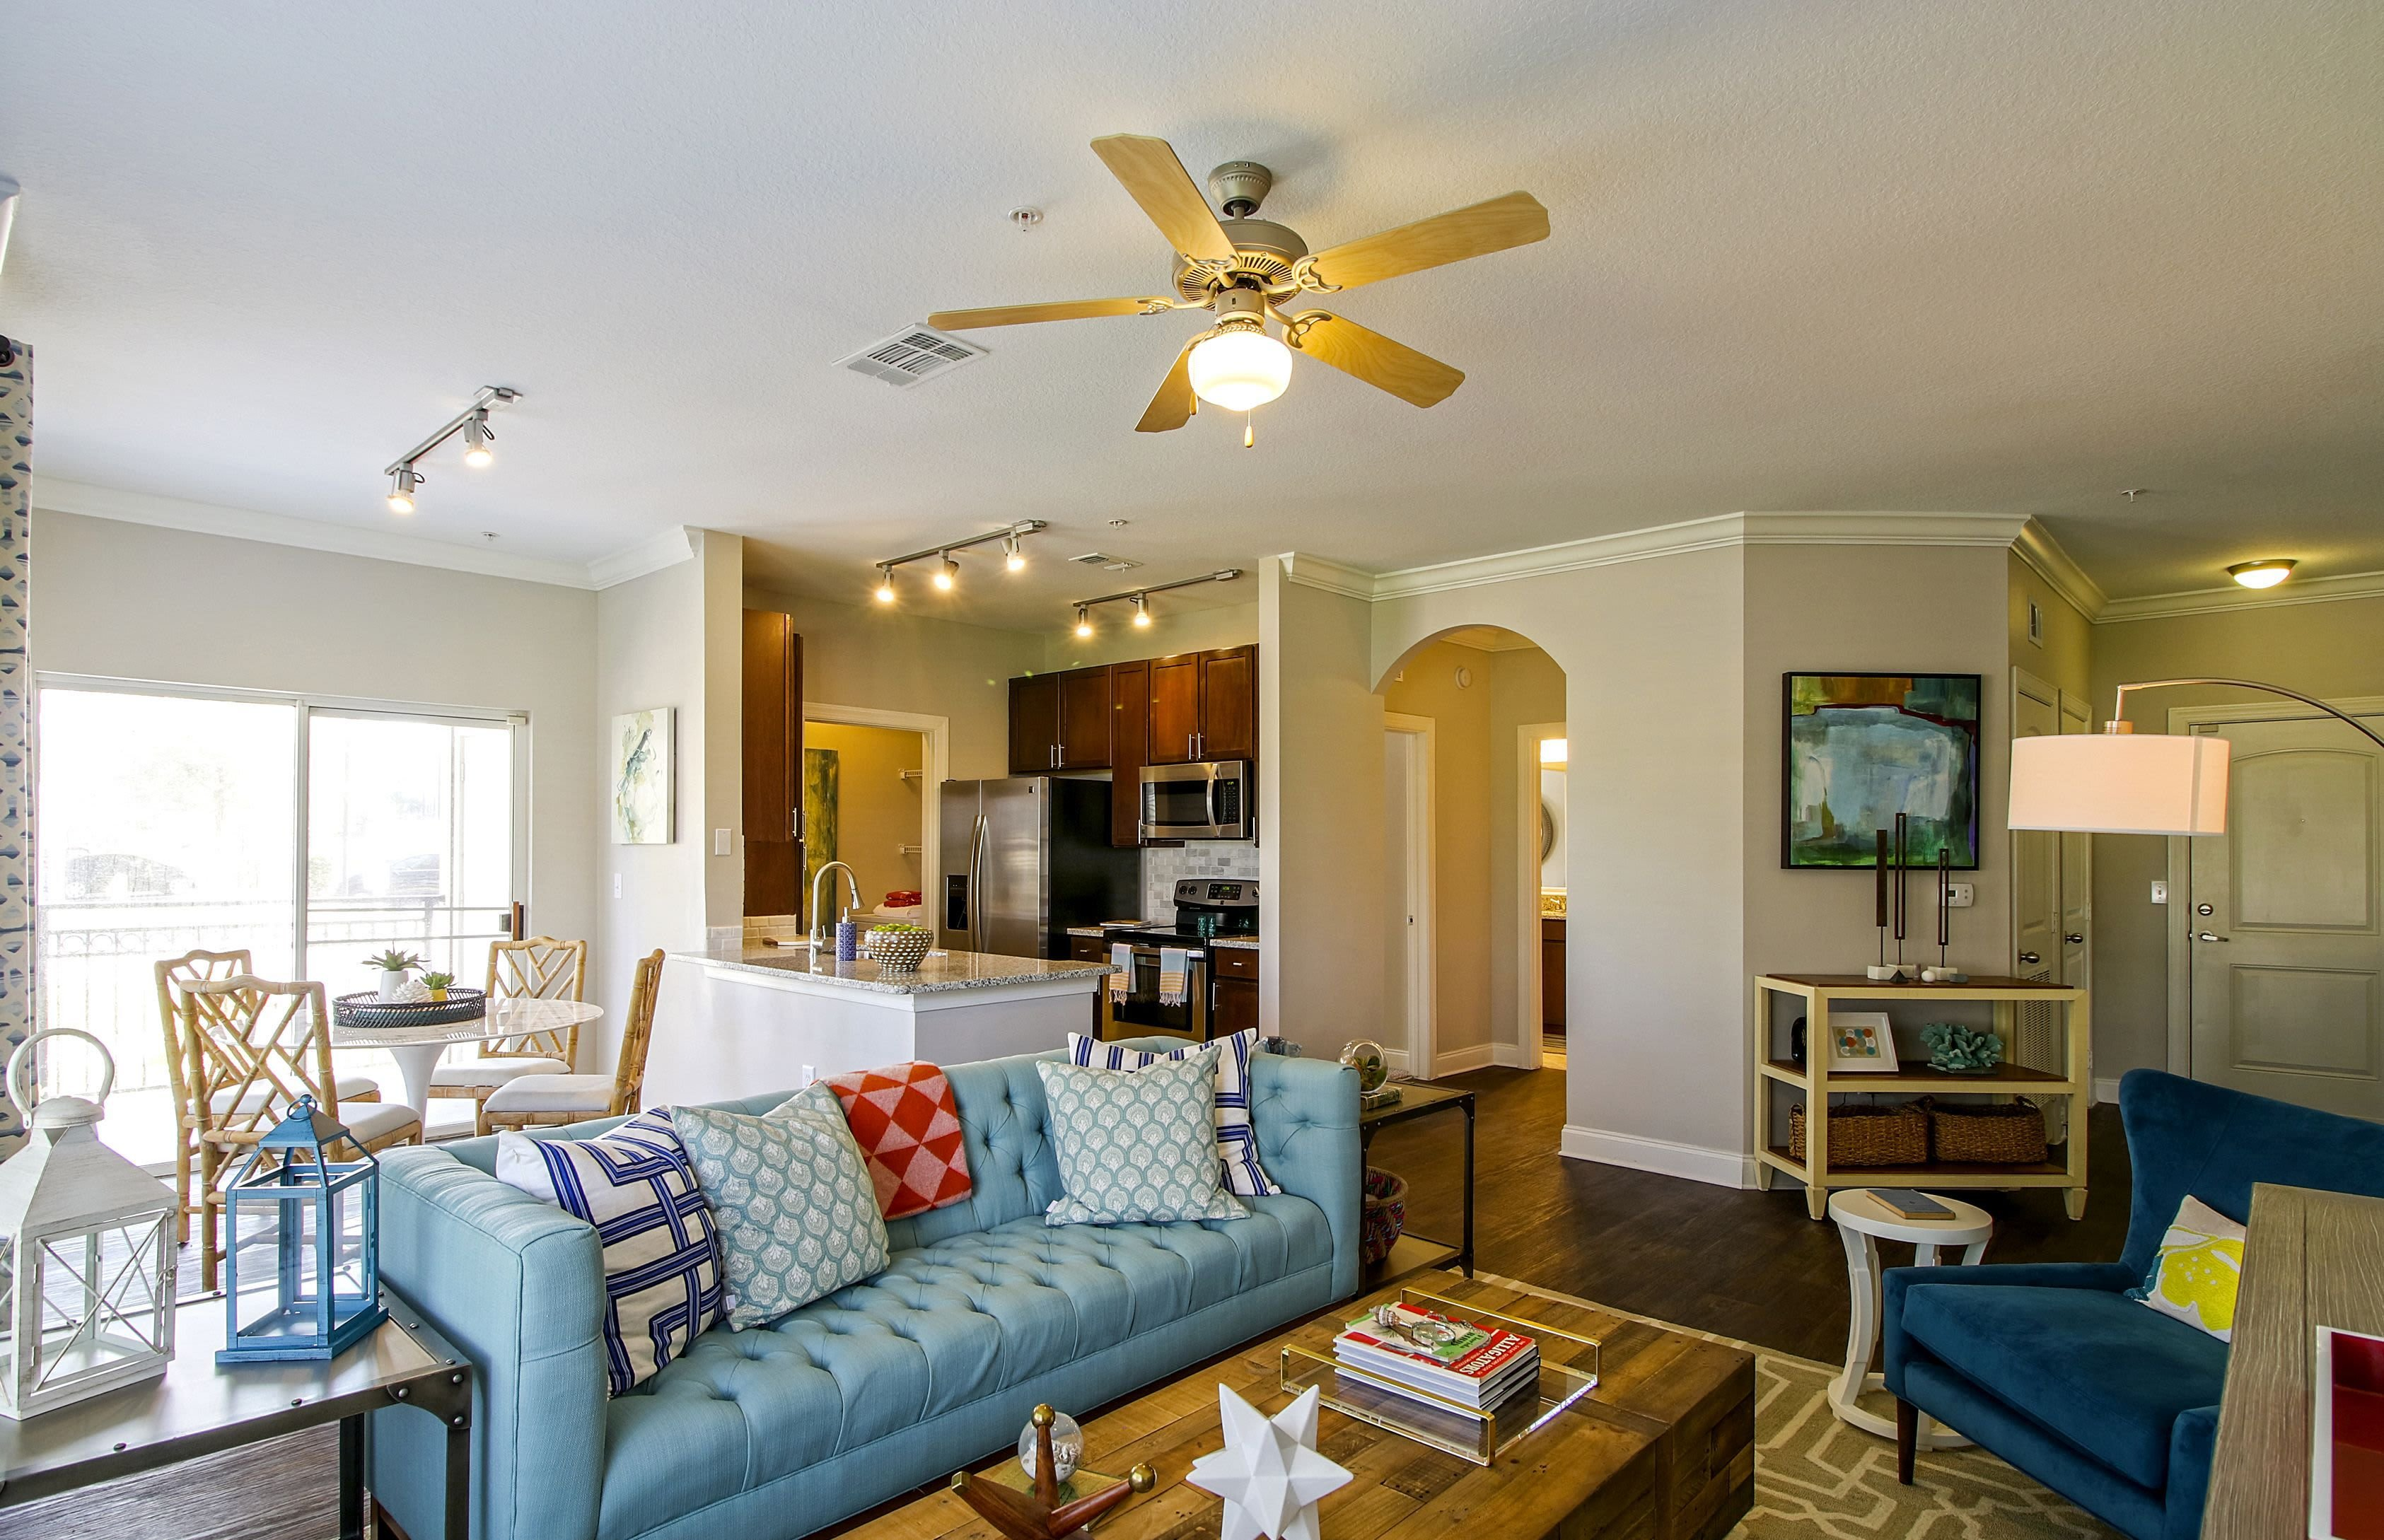 Best Photos Of Our 1 2 3 Bedroom Apartments In Melbourne Fl With Pictures